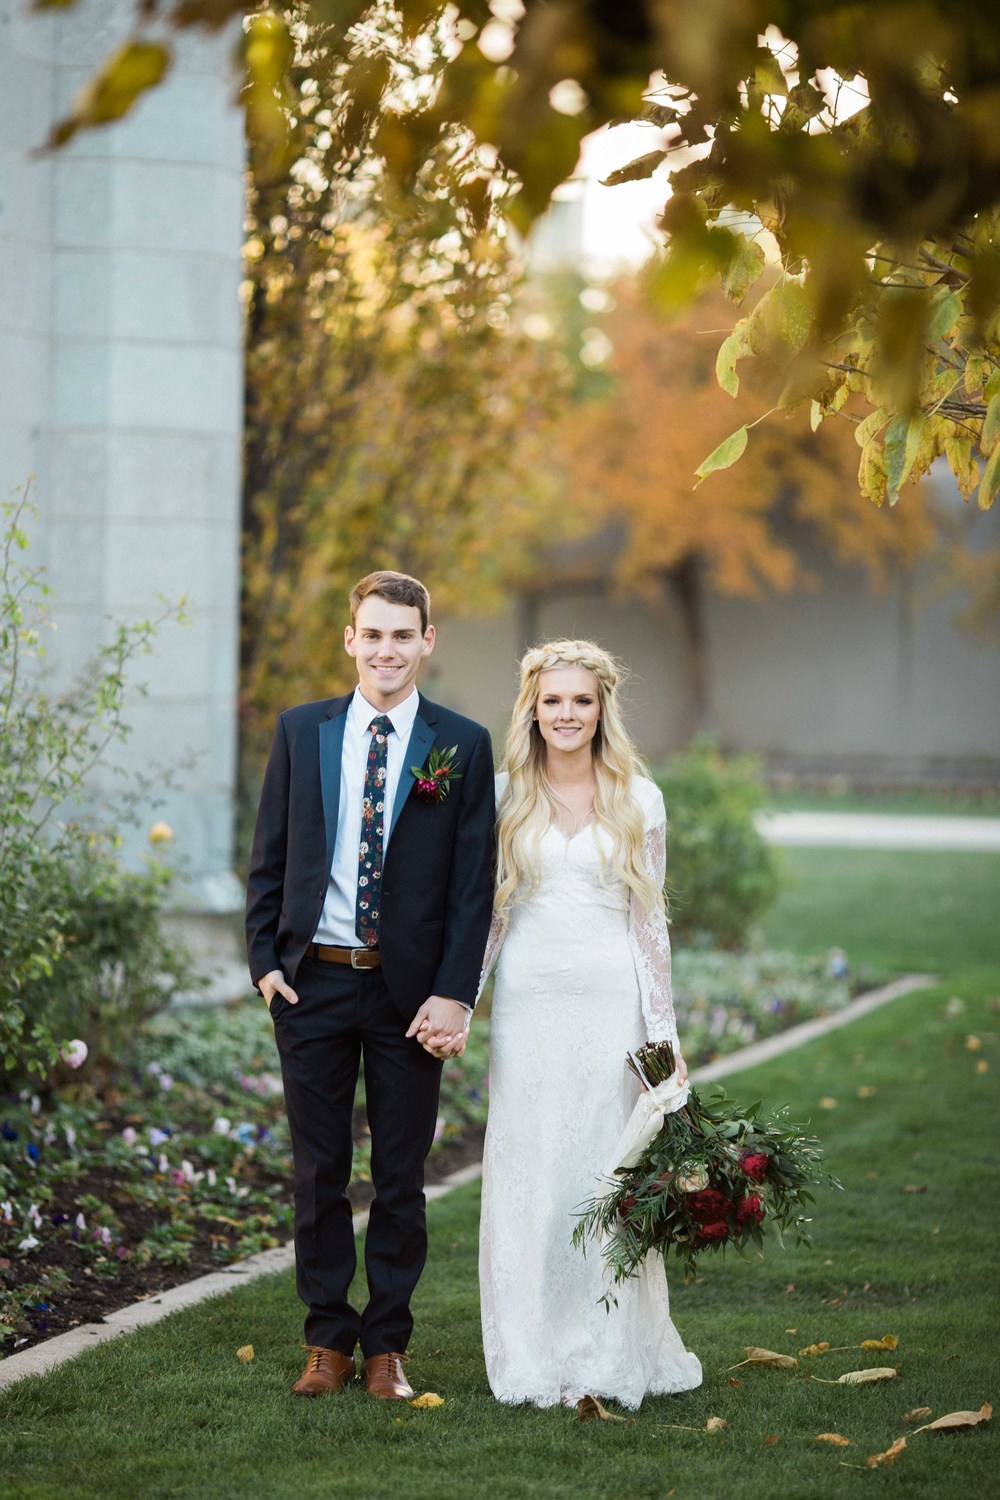 Salt-Lake-City-Wedding-Photographer-20.jpg